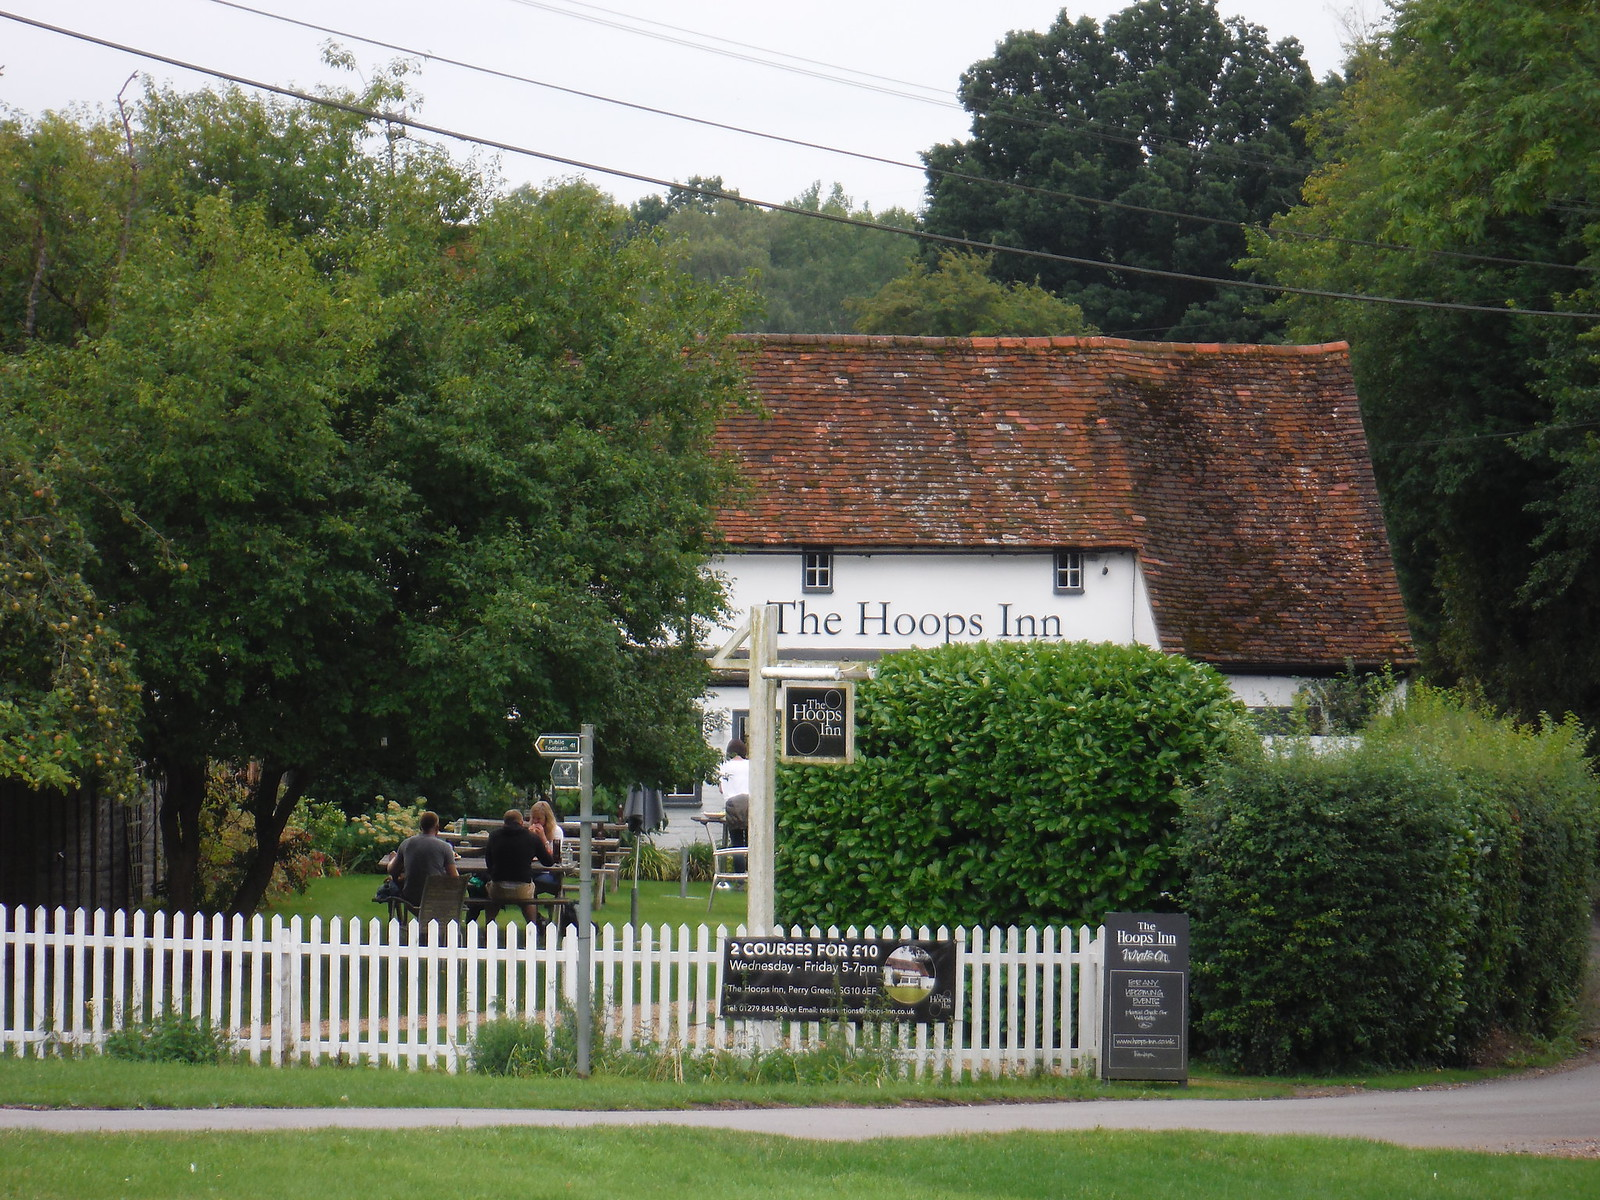 The Hoops Inn (front) SWC Walk 164 Roydon to Sawbridgeworth via Henry Moore Foundation